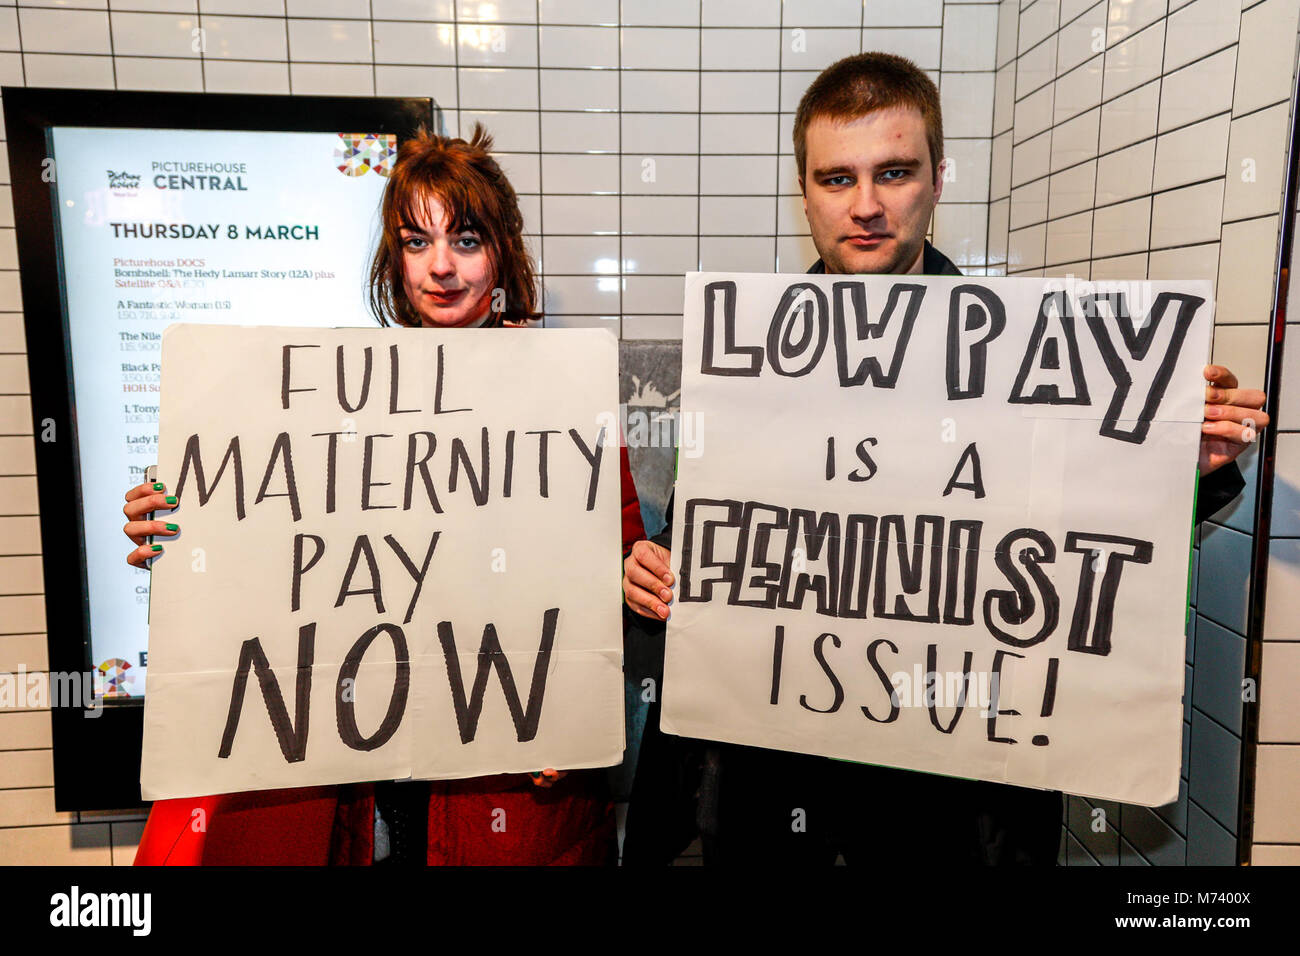 London, UK. 8th Mar, 2018. International Women's Day 2018 - Strike at Picture House Central - London - 2018 - Stock Image